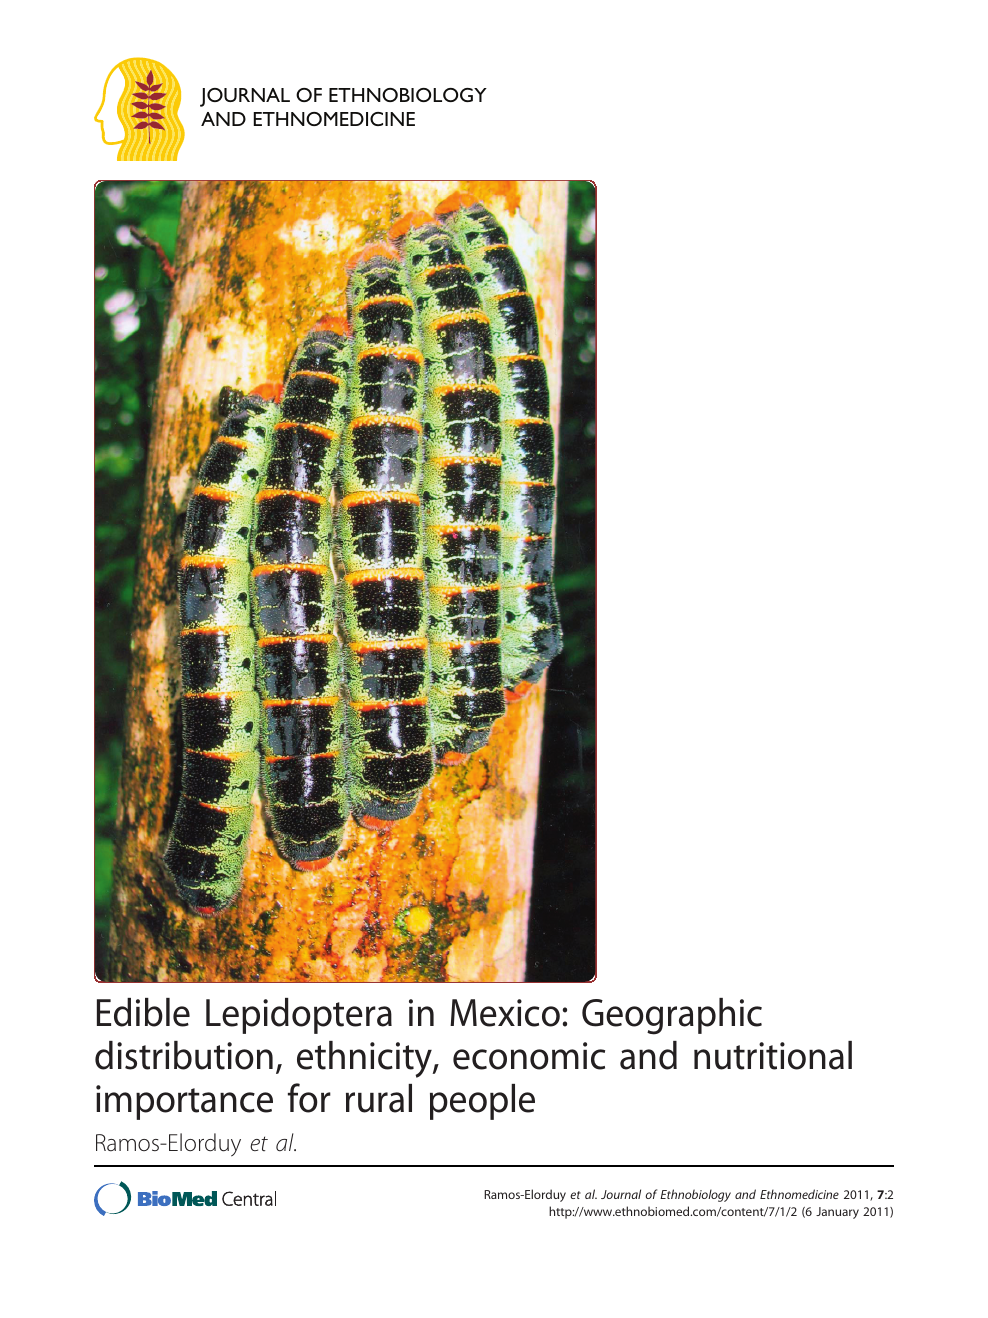 Edible Lepidoptera in Mexico: Geographic distribution, ethnicity